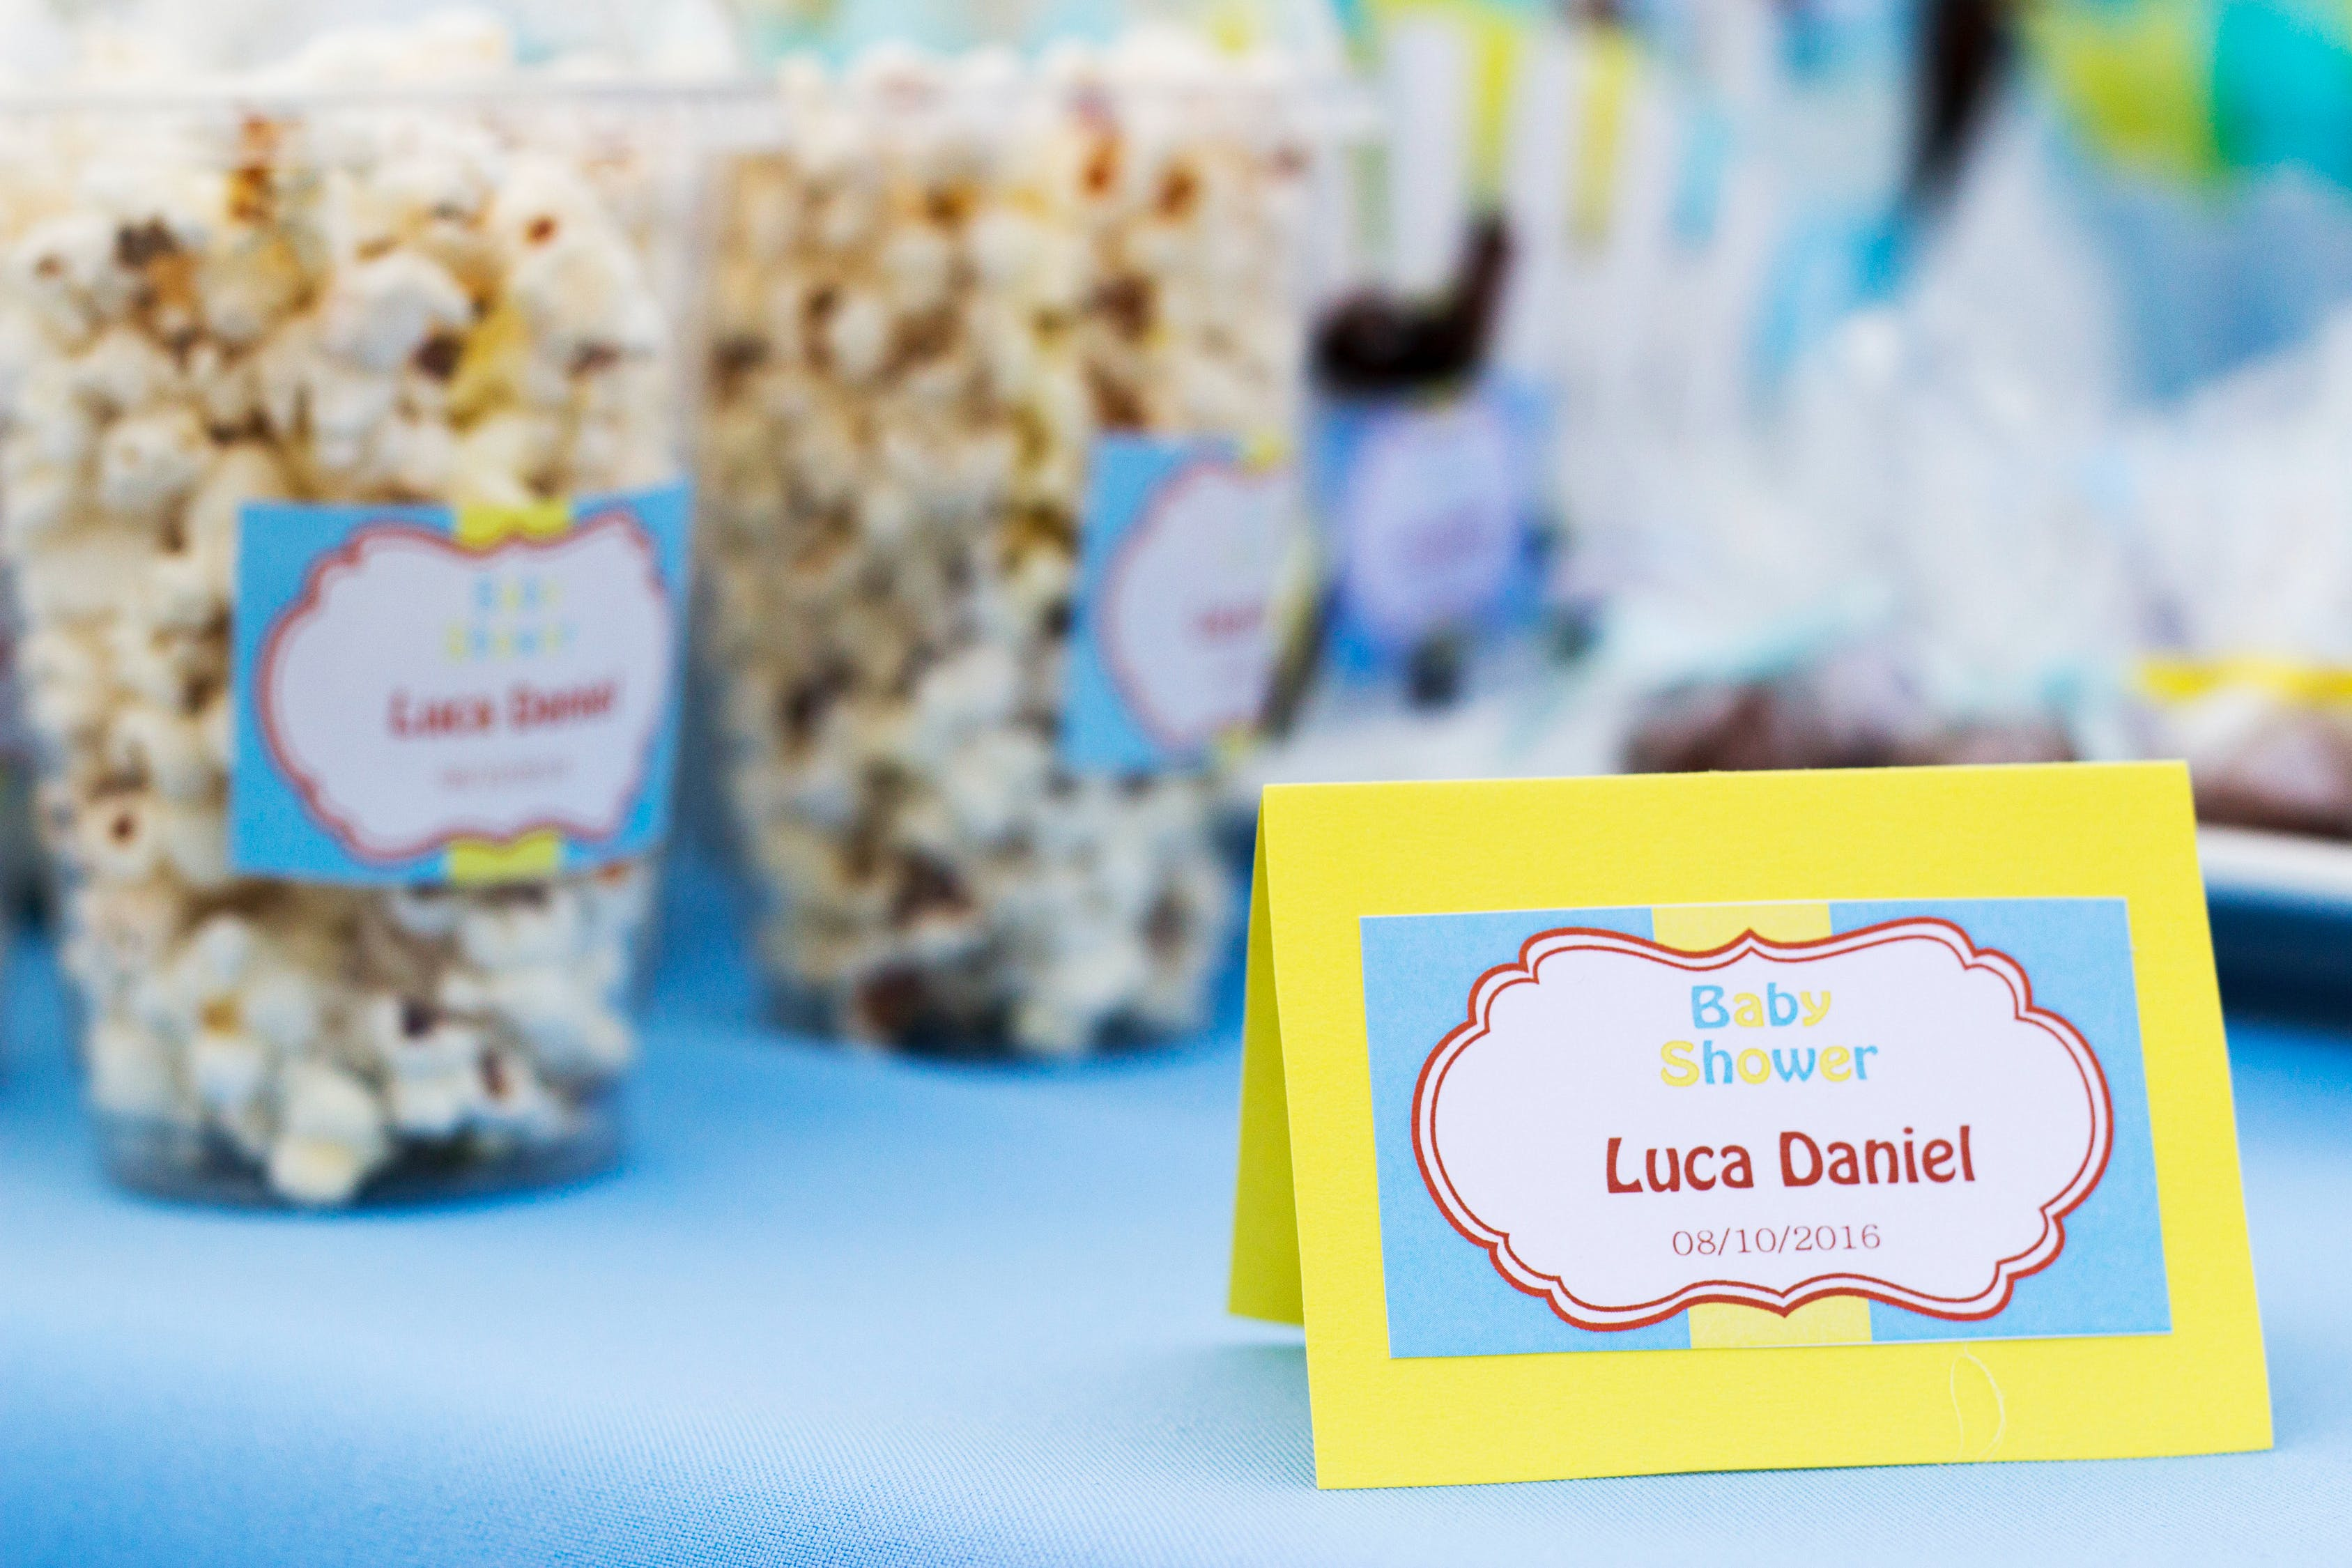 Popcorn Containers in Shallow Focus Photography